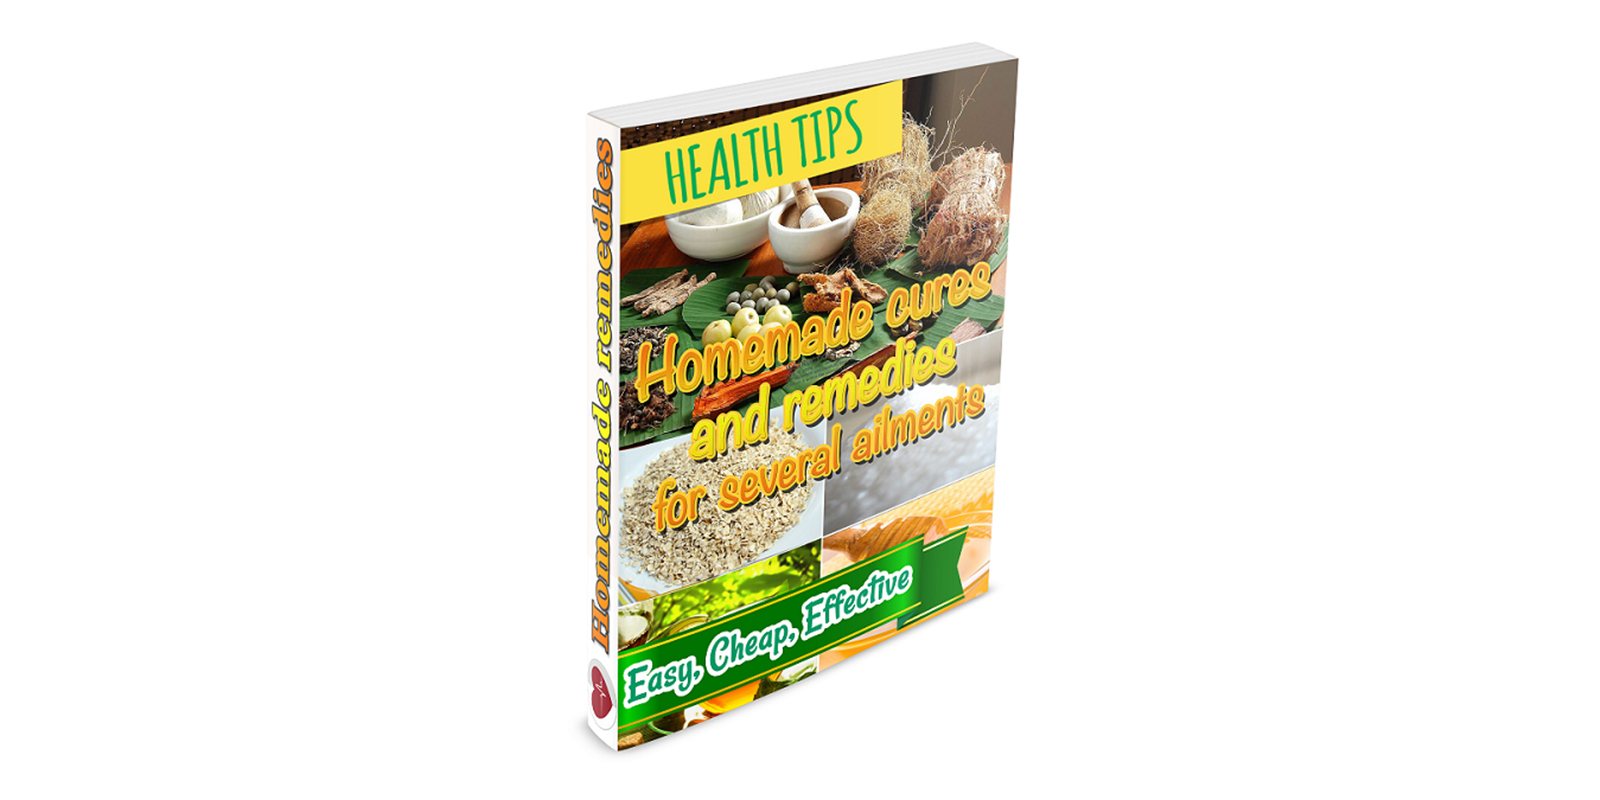 Homemade Cures And Remedies Review